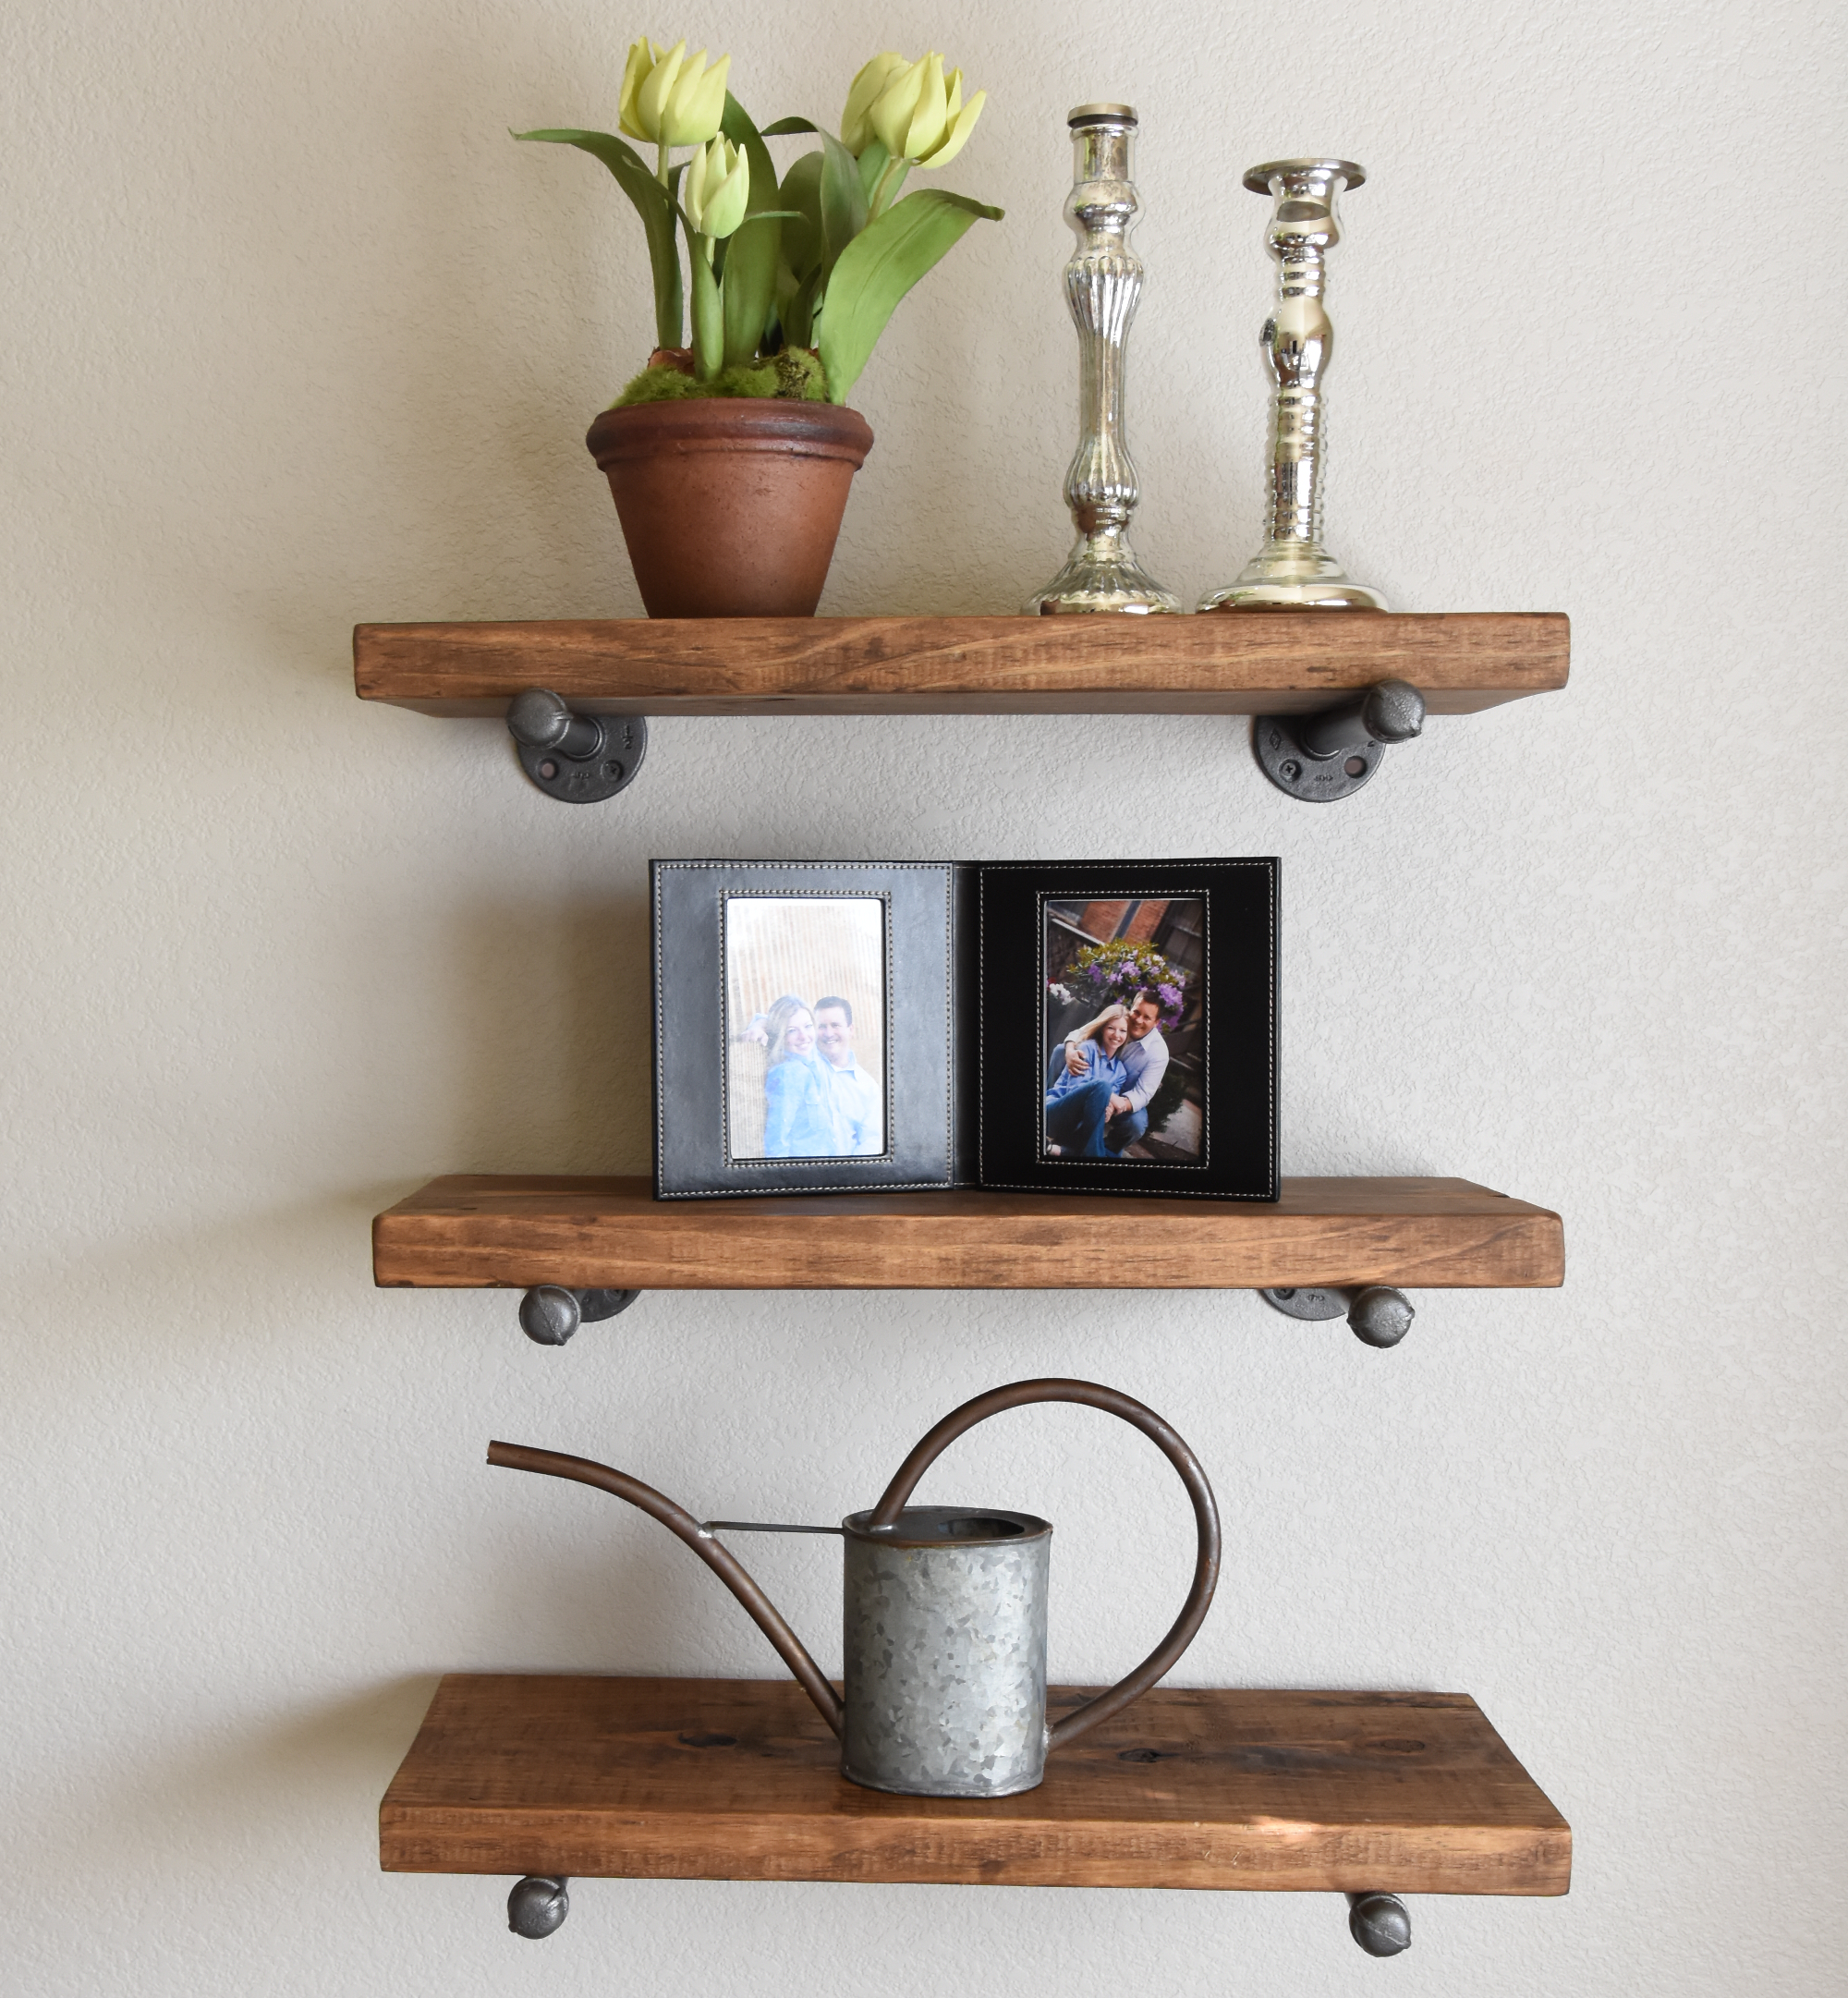 custom industrial rustic floating shelf made order from first look three shelves wood hardware office table with computer cube storage unit bunnings prepac sonoma black triple